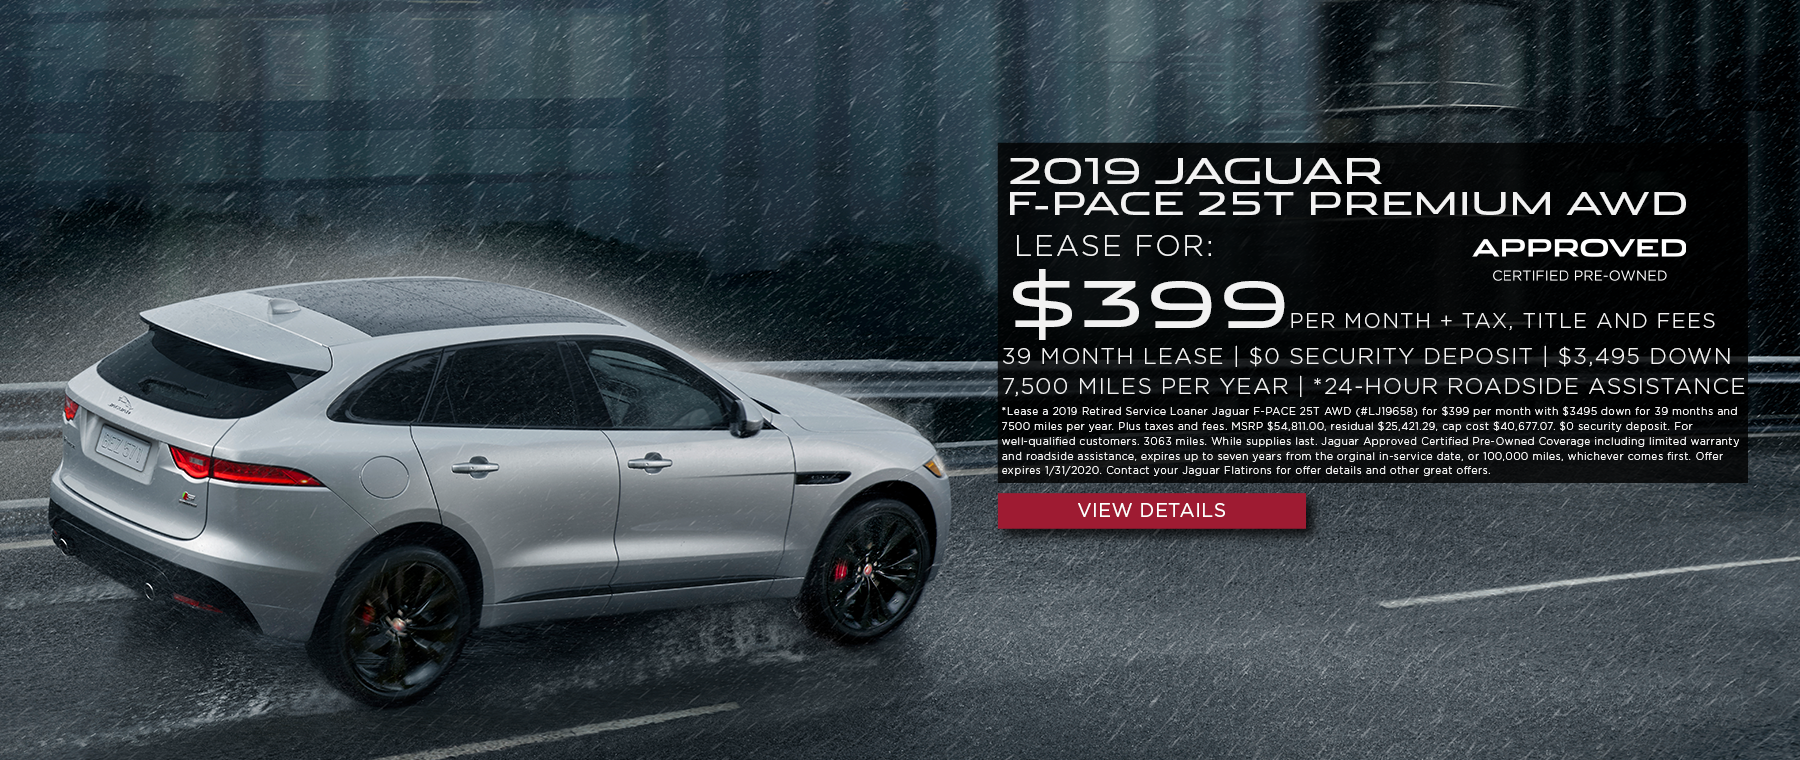 2019 silver Jaguar F-PACE 25T Premium AWD on road withrain and building in background. *Lease a 2019 Retired Service Loaner Jaguar F-PACE 25T AWD (#LJ19658) for $399 per month with $3495 down for 39 months and 7500 miles per year. Plus taxes and fees. MSRP $54,811.00, residual $25,421.29, cap cost $40,677.07. $0 security deposit. For well-qualified customers. 3063 miles. While supplies last. Jaguar Approved Certified Pre-Owned Coverage including limited warranty and roadside assistance, expires up to seven years from the orginal in-service date, or 100,000 miles, whichever comes first. Offer expires 1/31/2020. Contact your Jaguar Flatirons for offer details and other great offers.